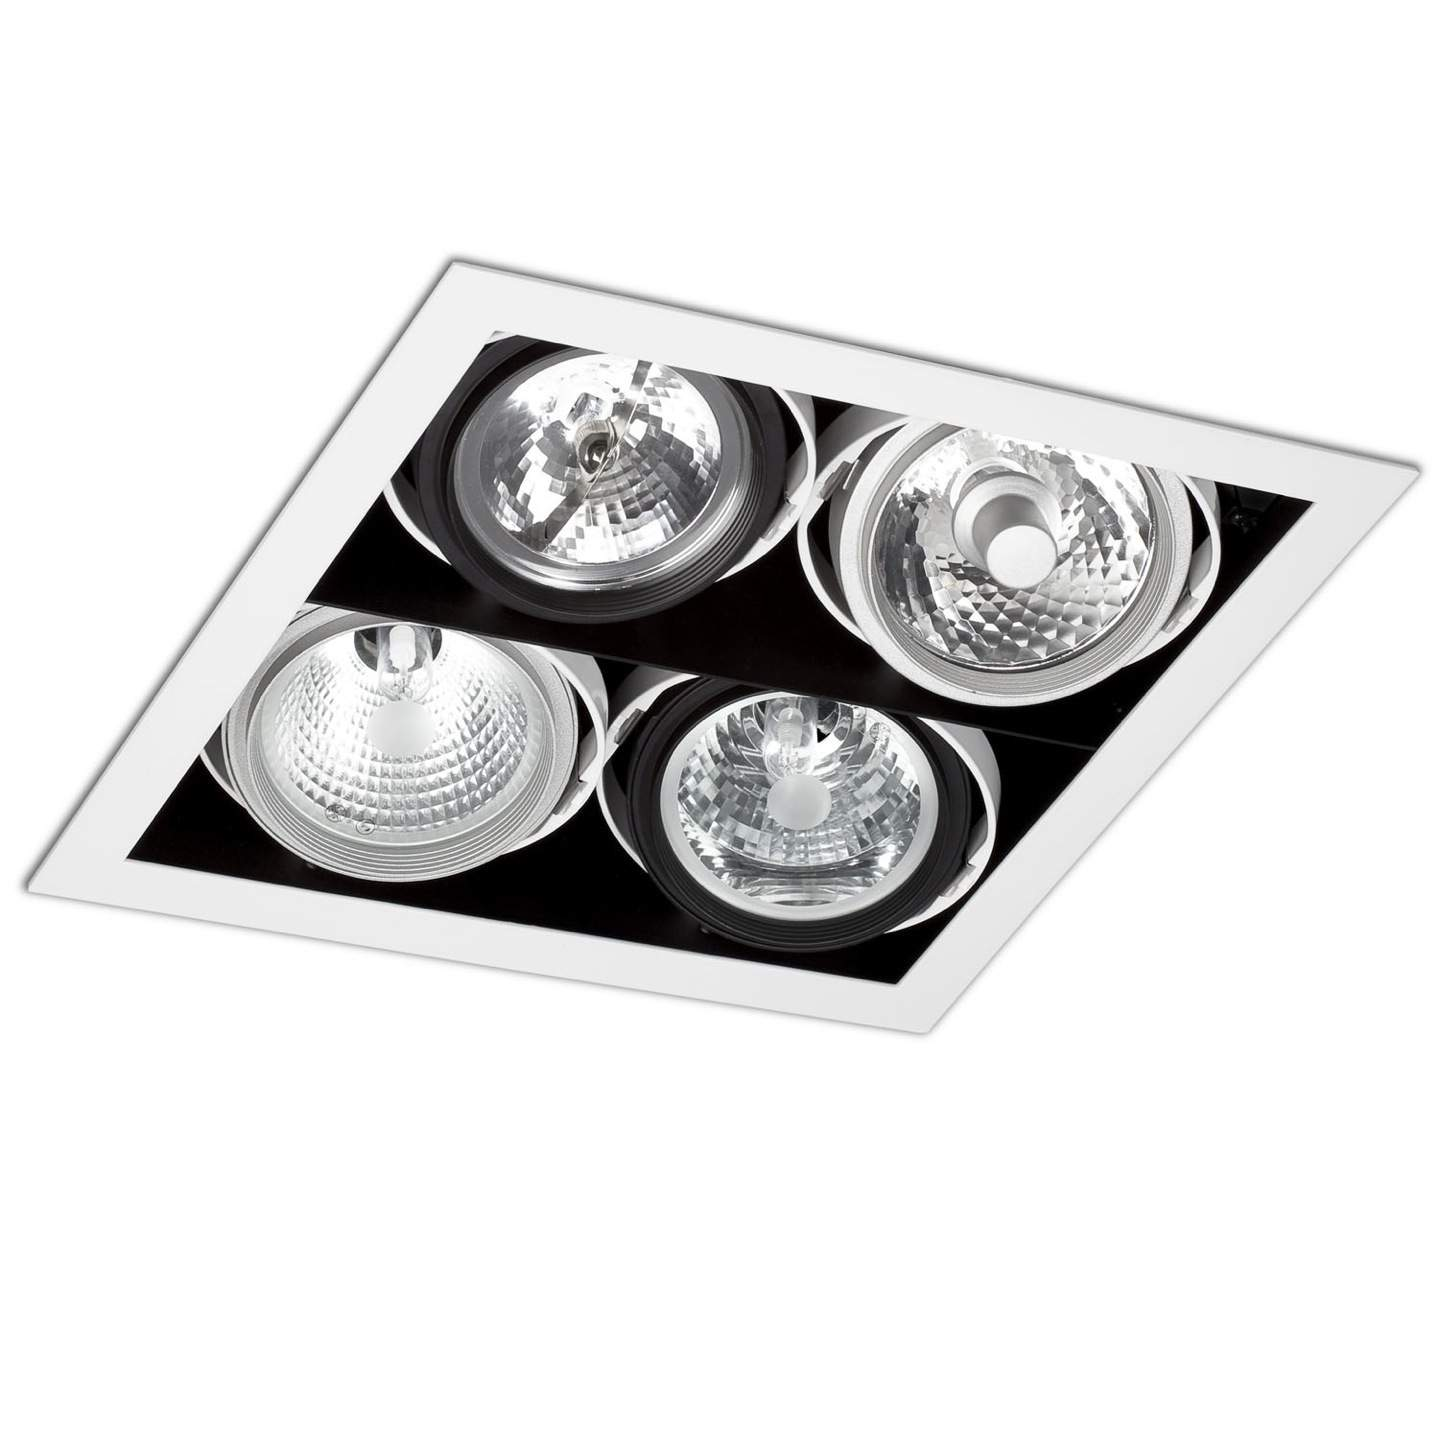 Morris Recessed Ceiling (body without PortaLámpara s) 4xElements white